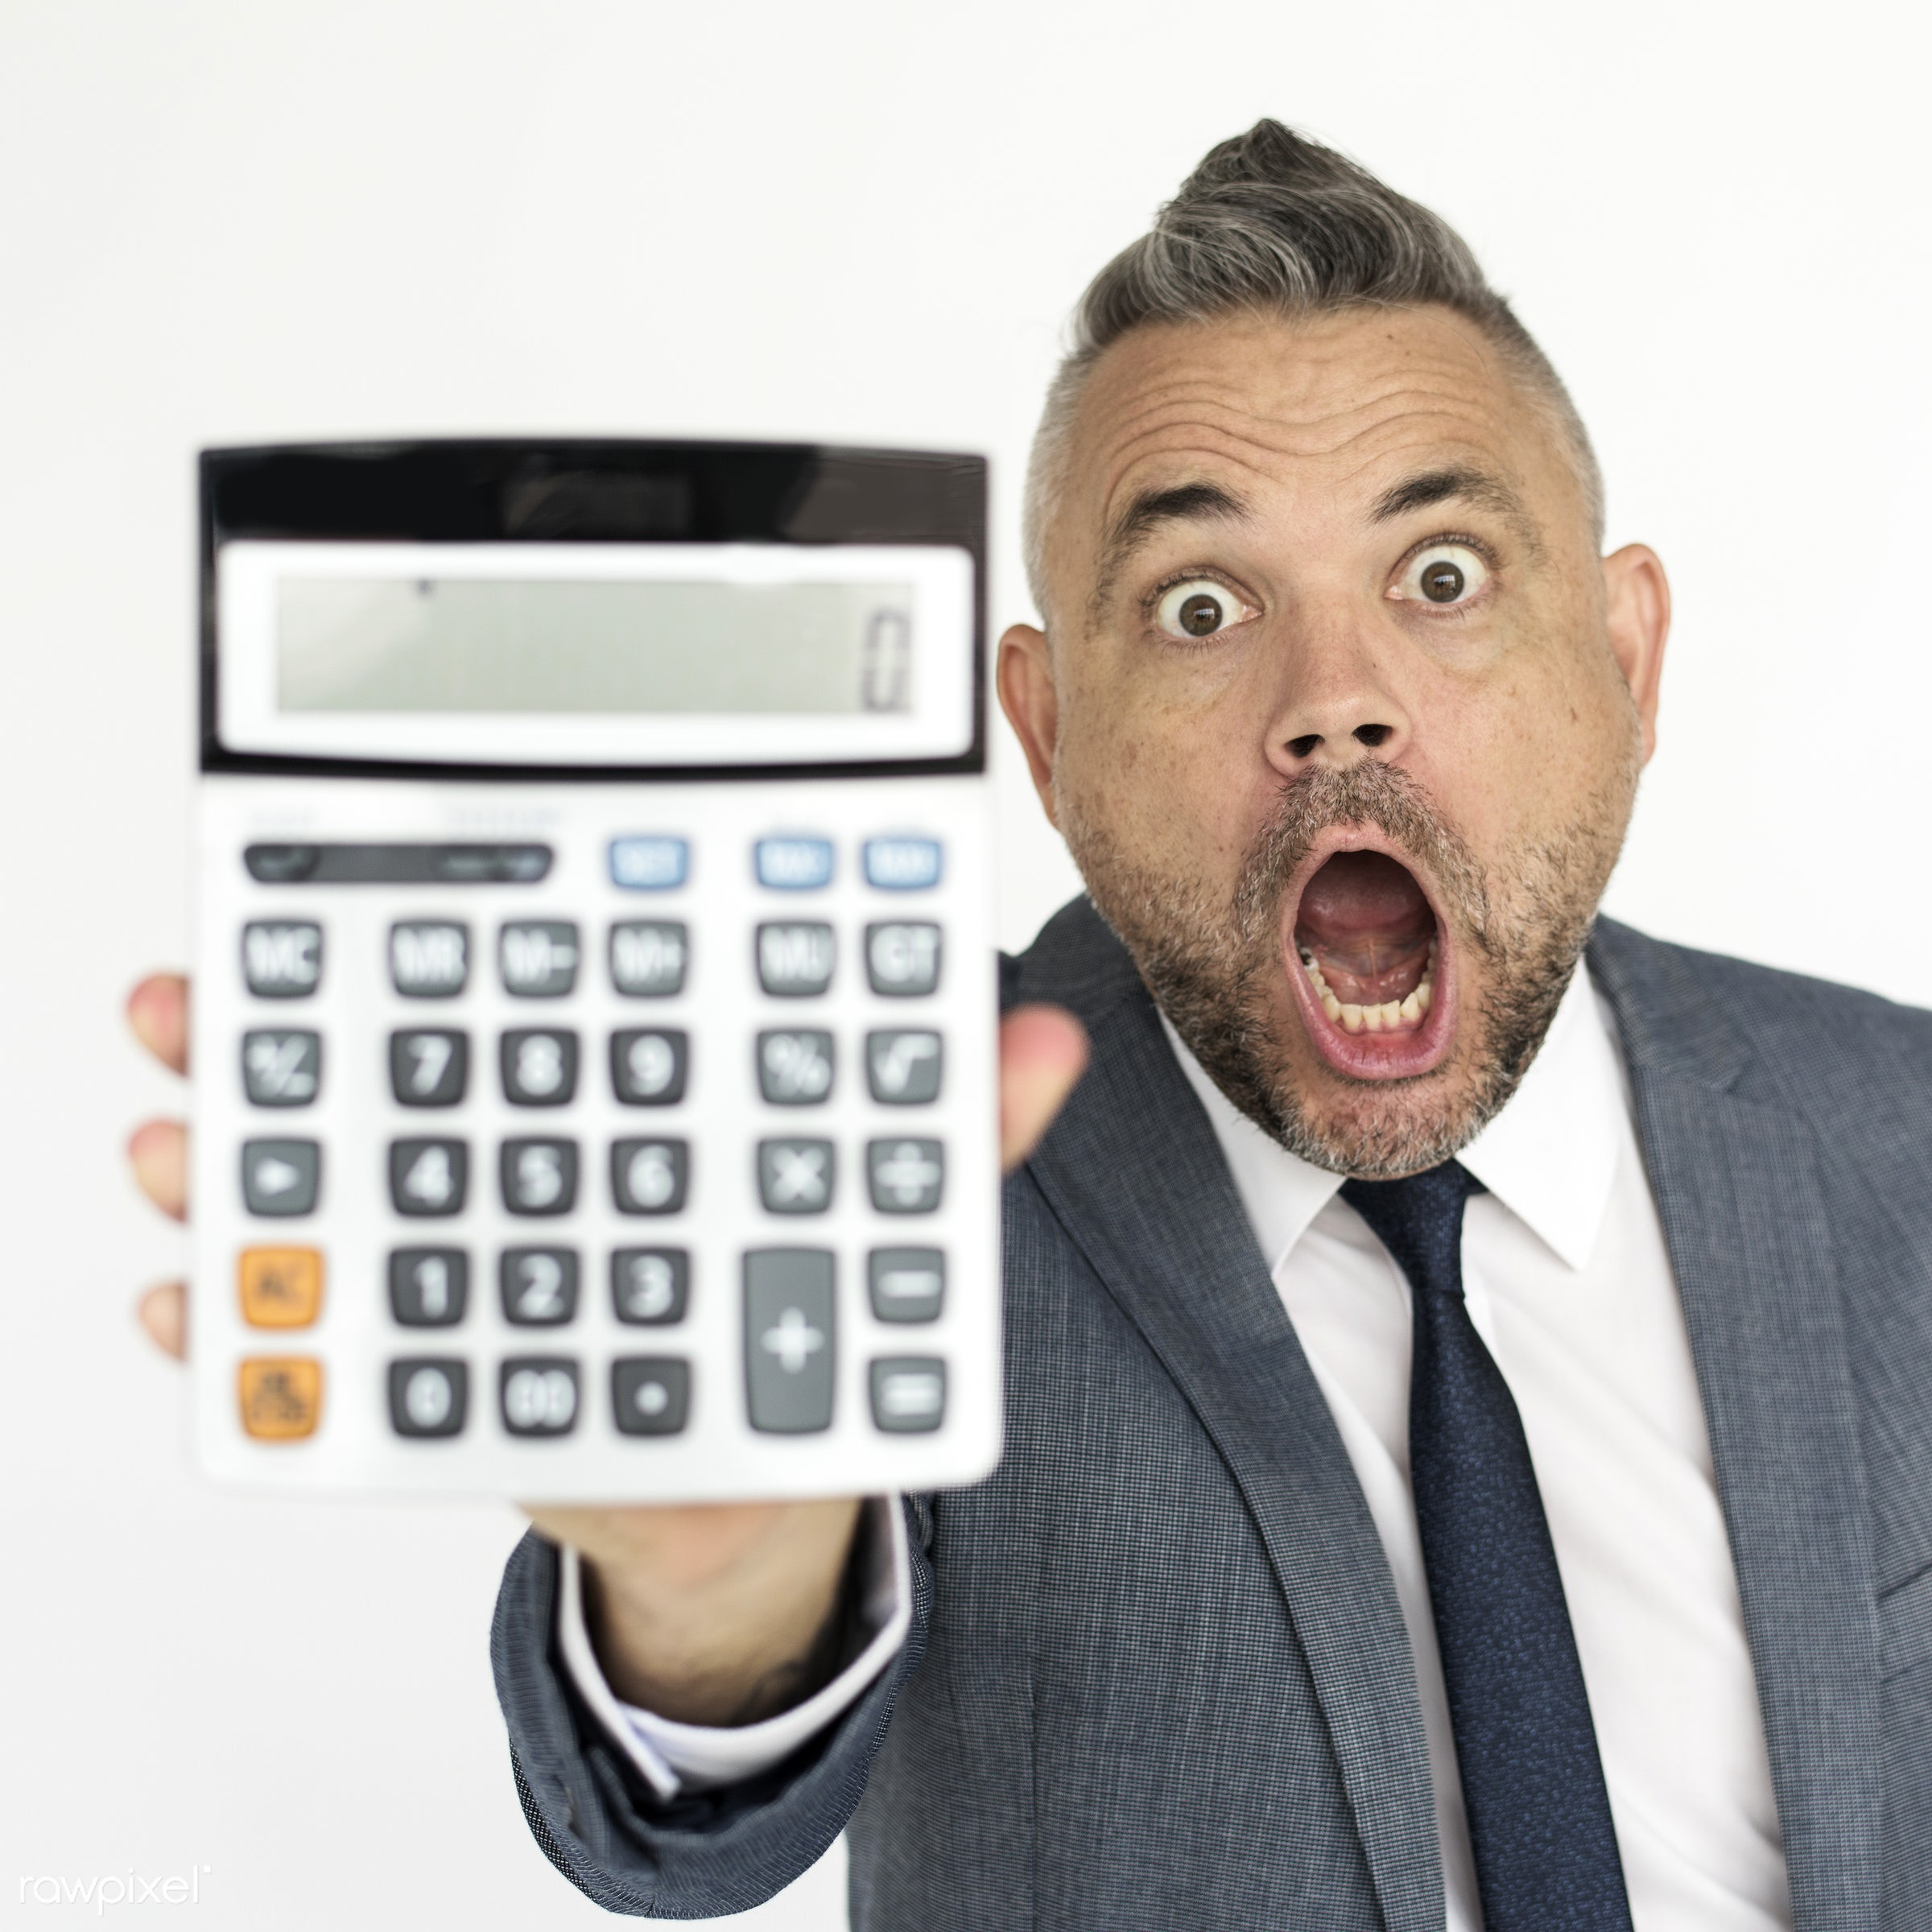 studio, person, one, people, business, modern, businessman, style, attractive, positive, calculator, cheerful, man, isolated...